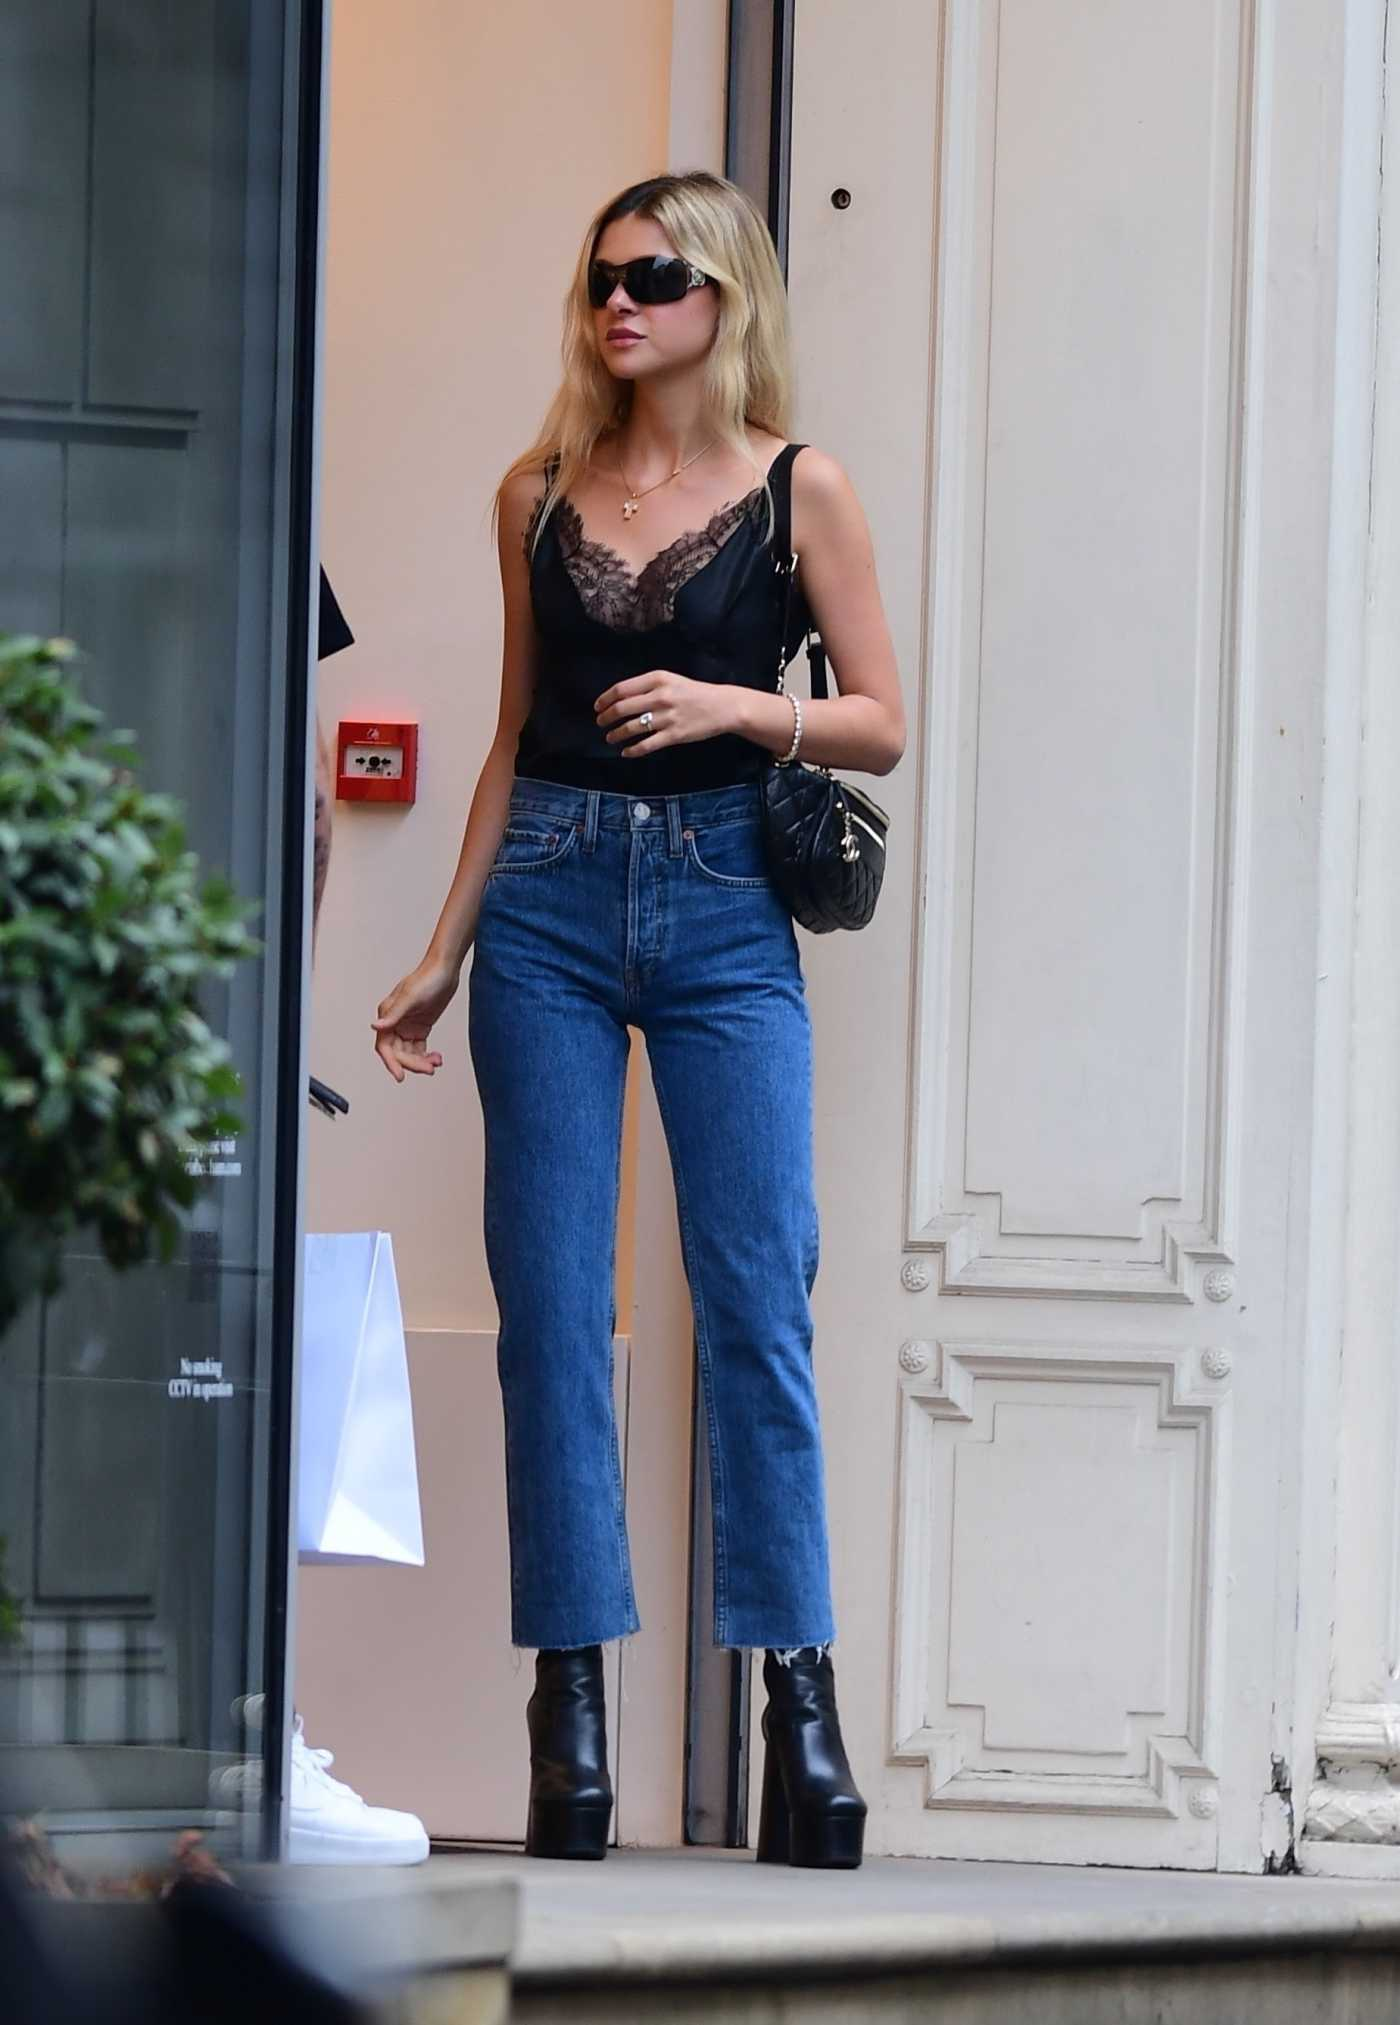 Nicola Peltz in a Black Top Leaves the Victoria Beckham Store on Dover Street in Central London 08/15/2020